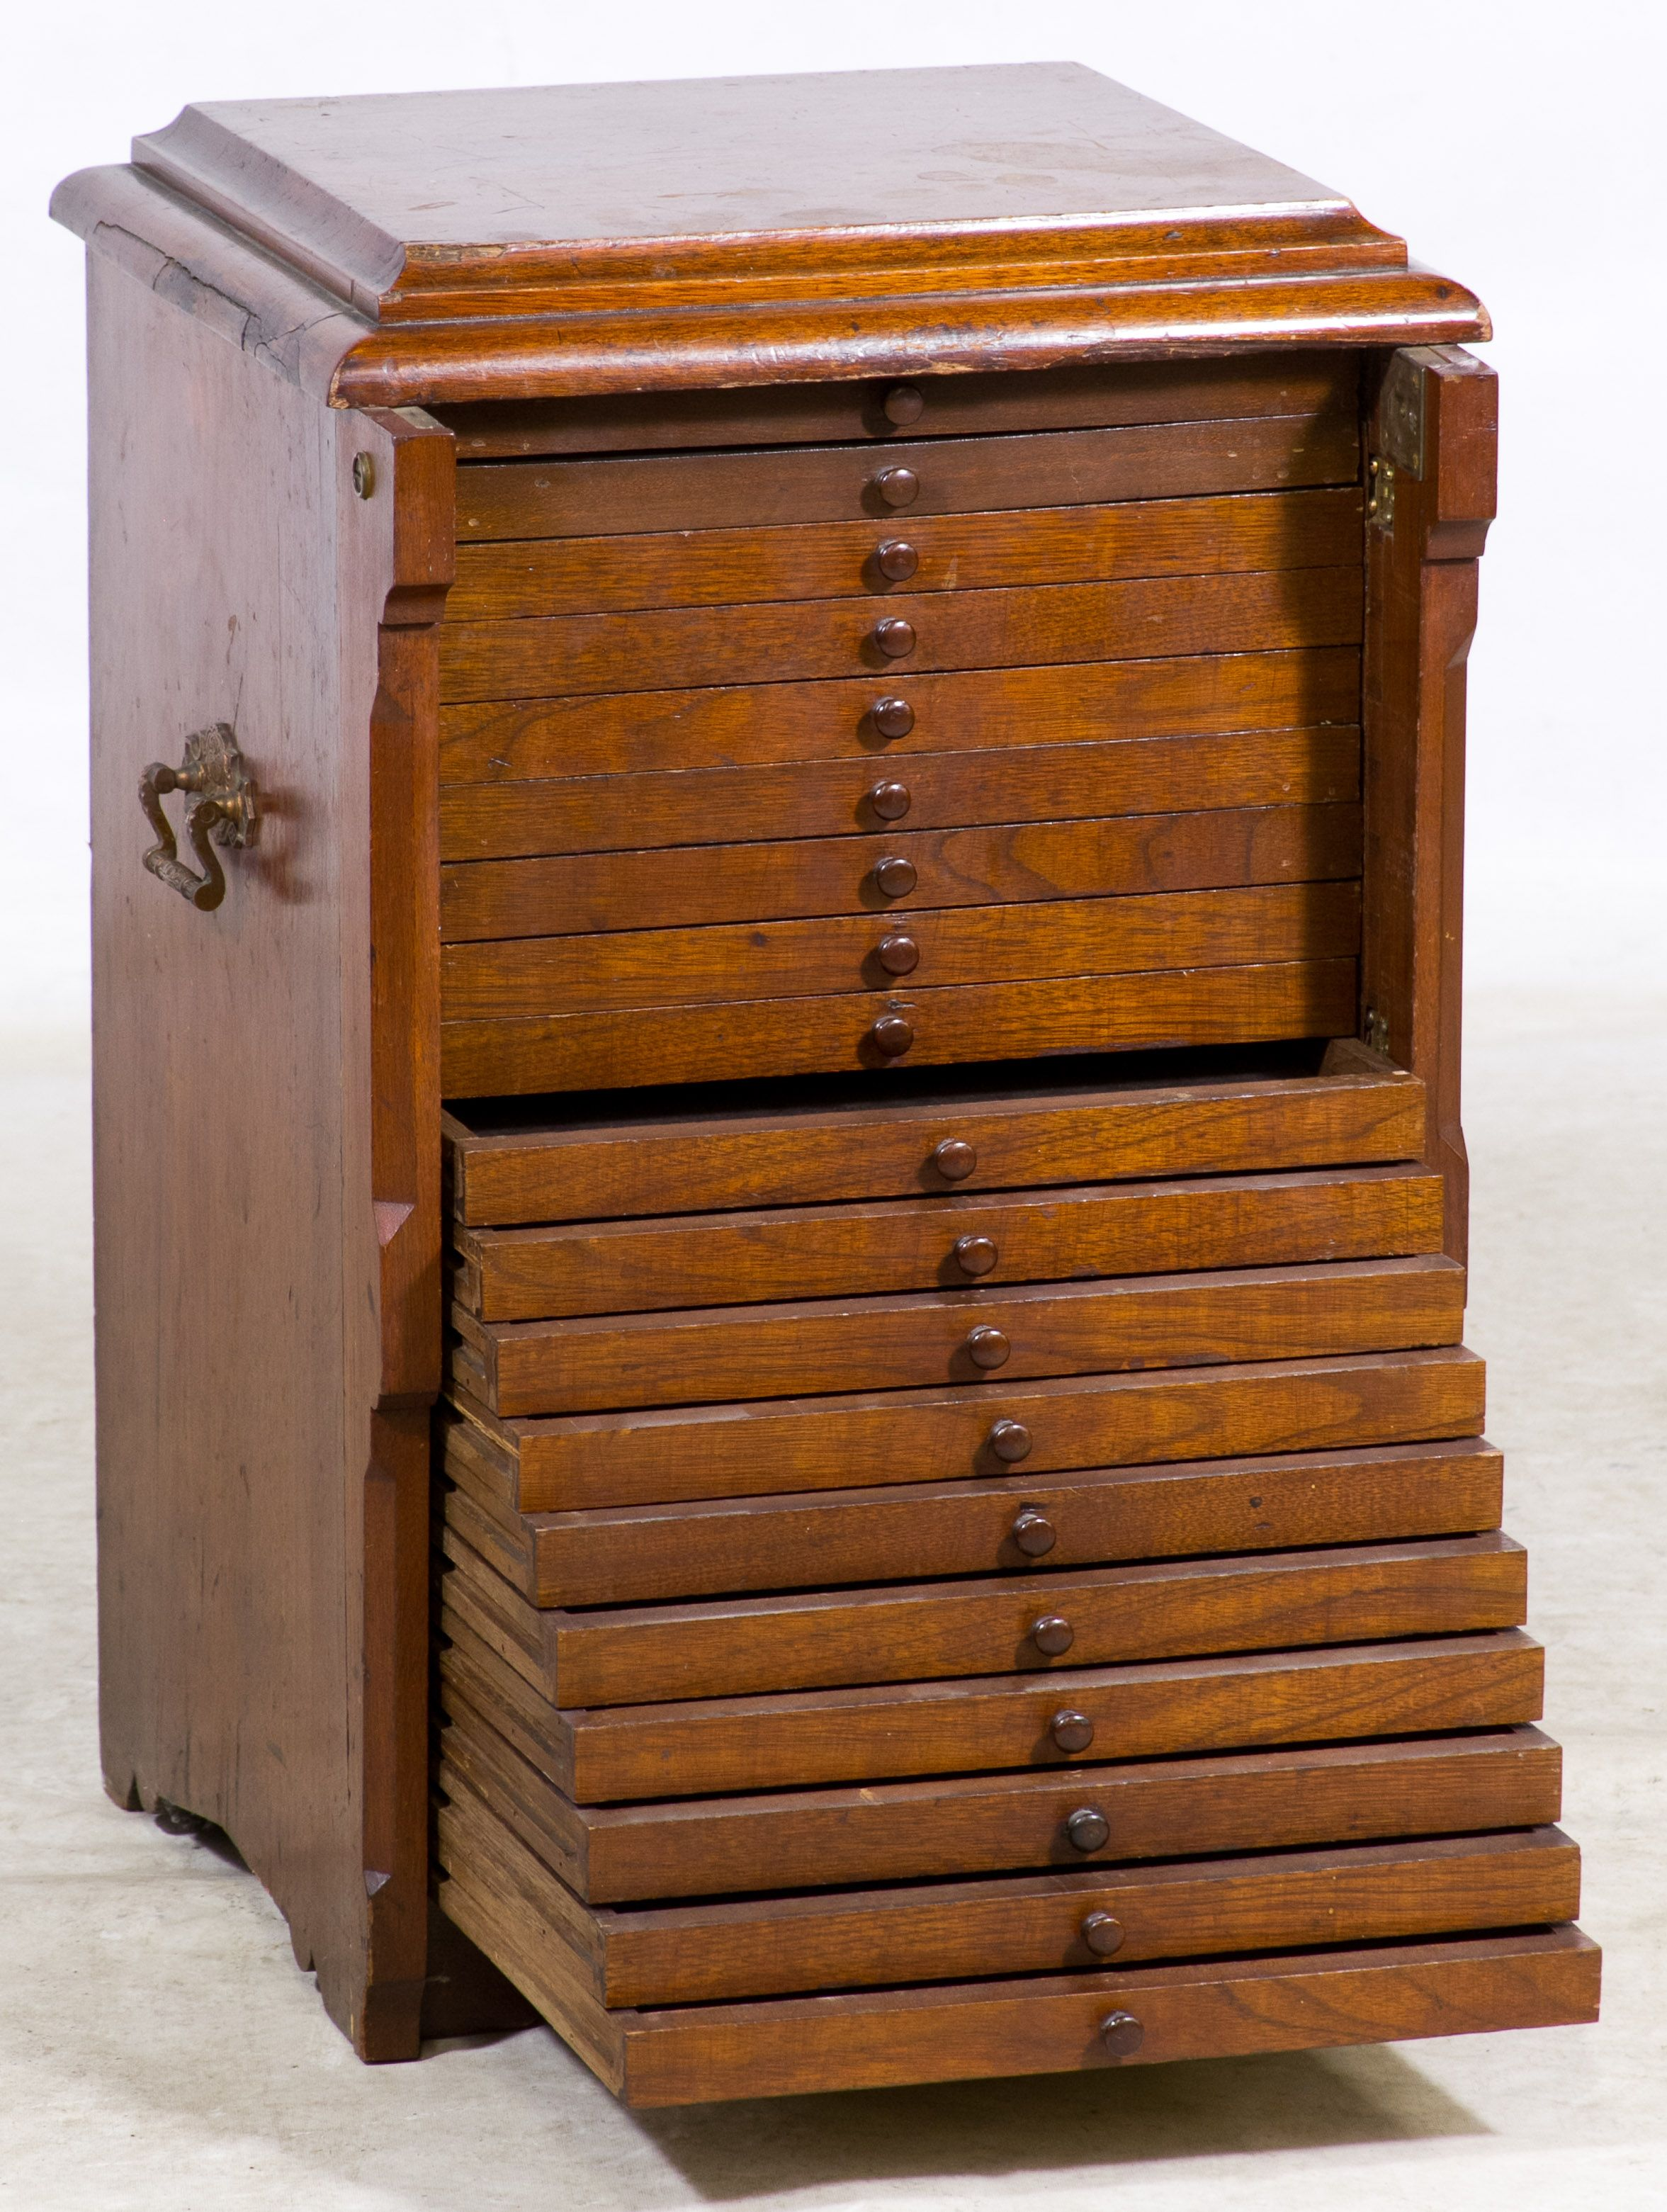 Lot 96 Walnut Jeweler S Cabinet Small Having Nine Shallow Drawers And Hinged Locking Trim